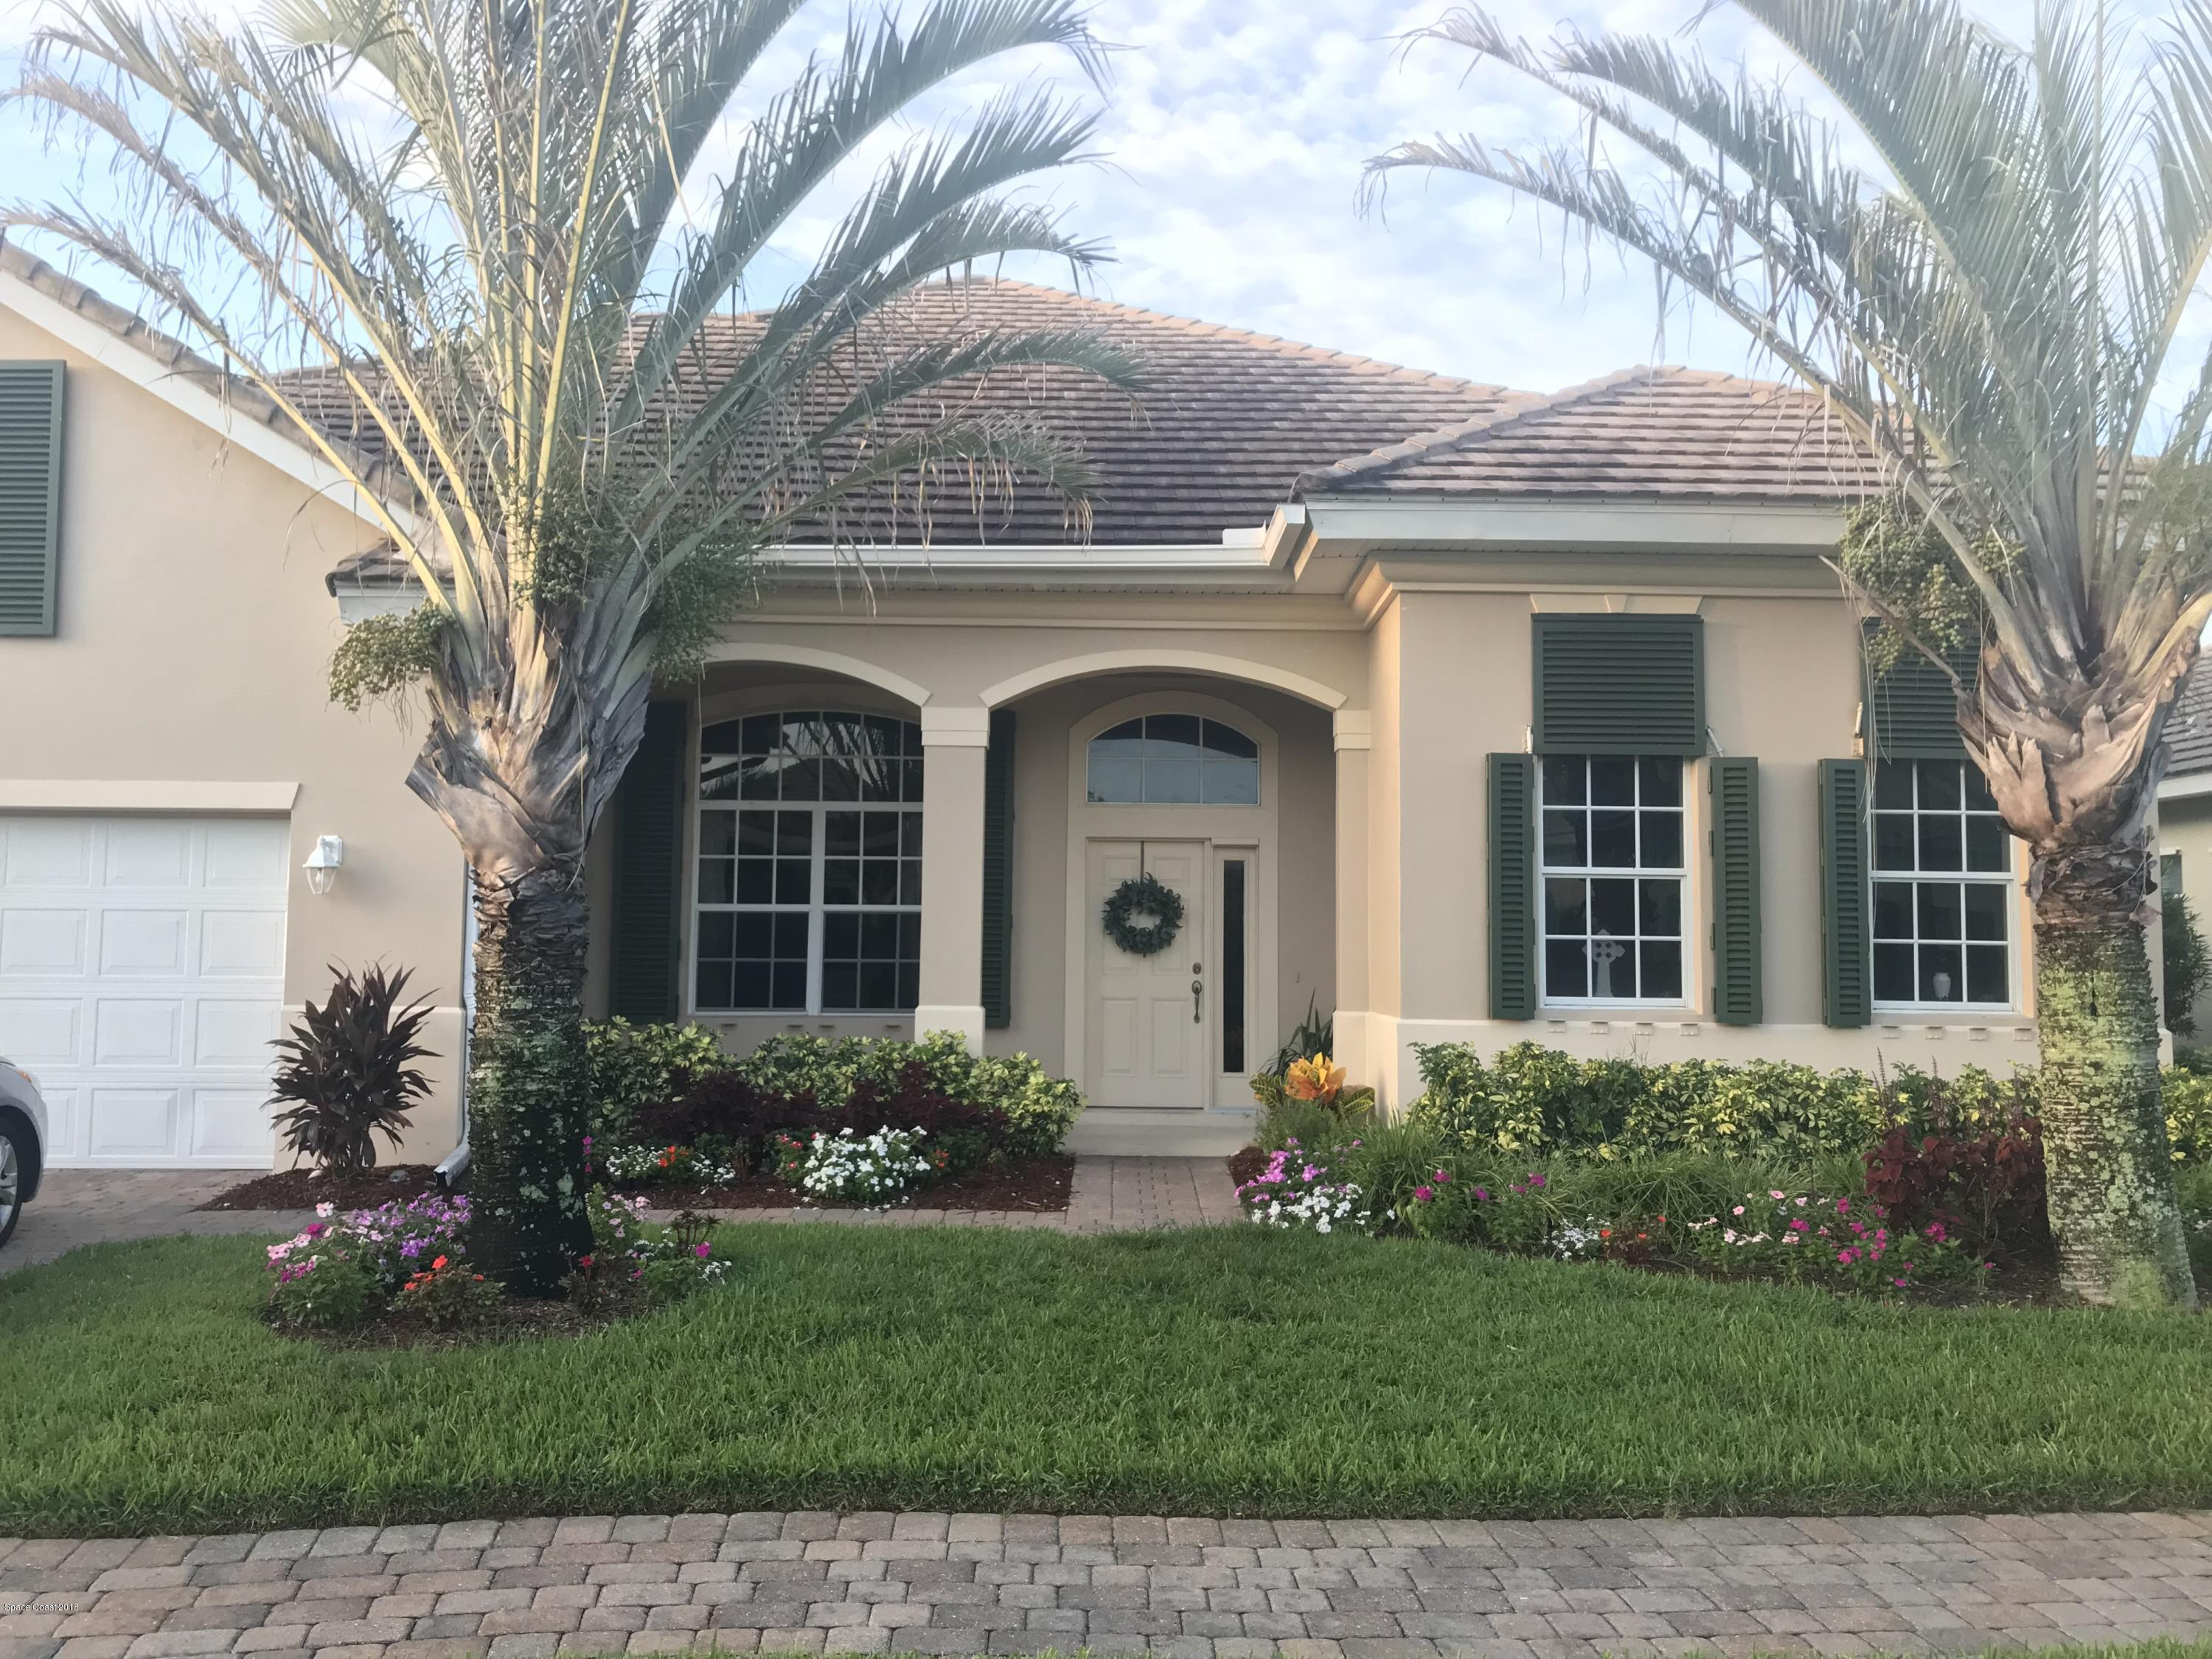 Single Family Home for Sale at 285 Clyde 285 Clyde Melbourne Beach, Florida 32951 United States